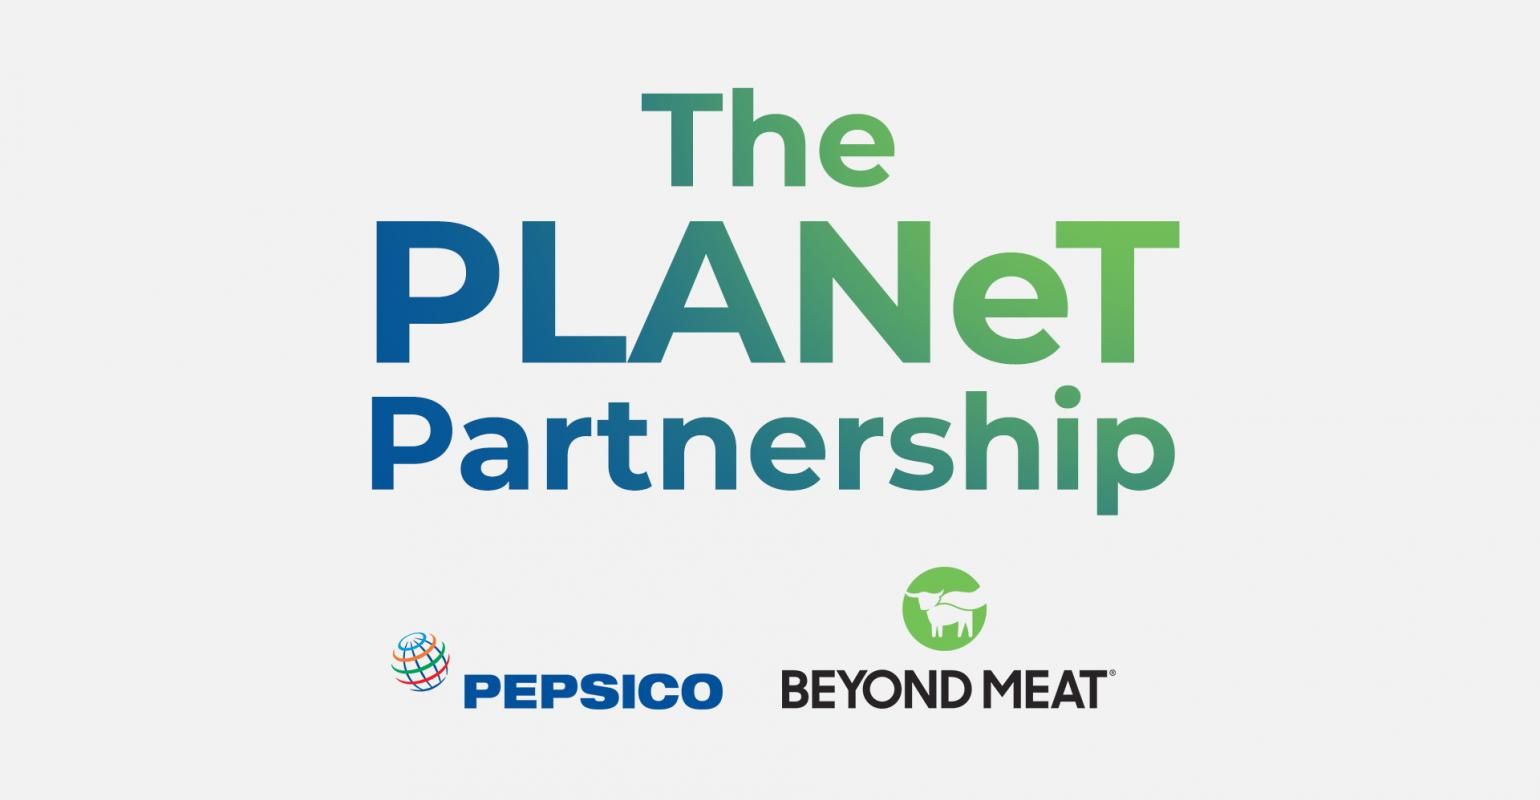 PepsiCo, Beyond Meat establish The PLANeT Partnership